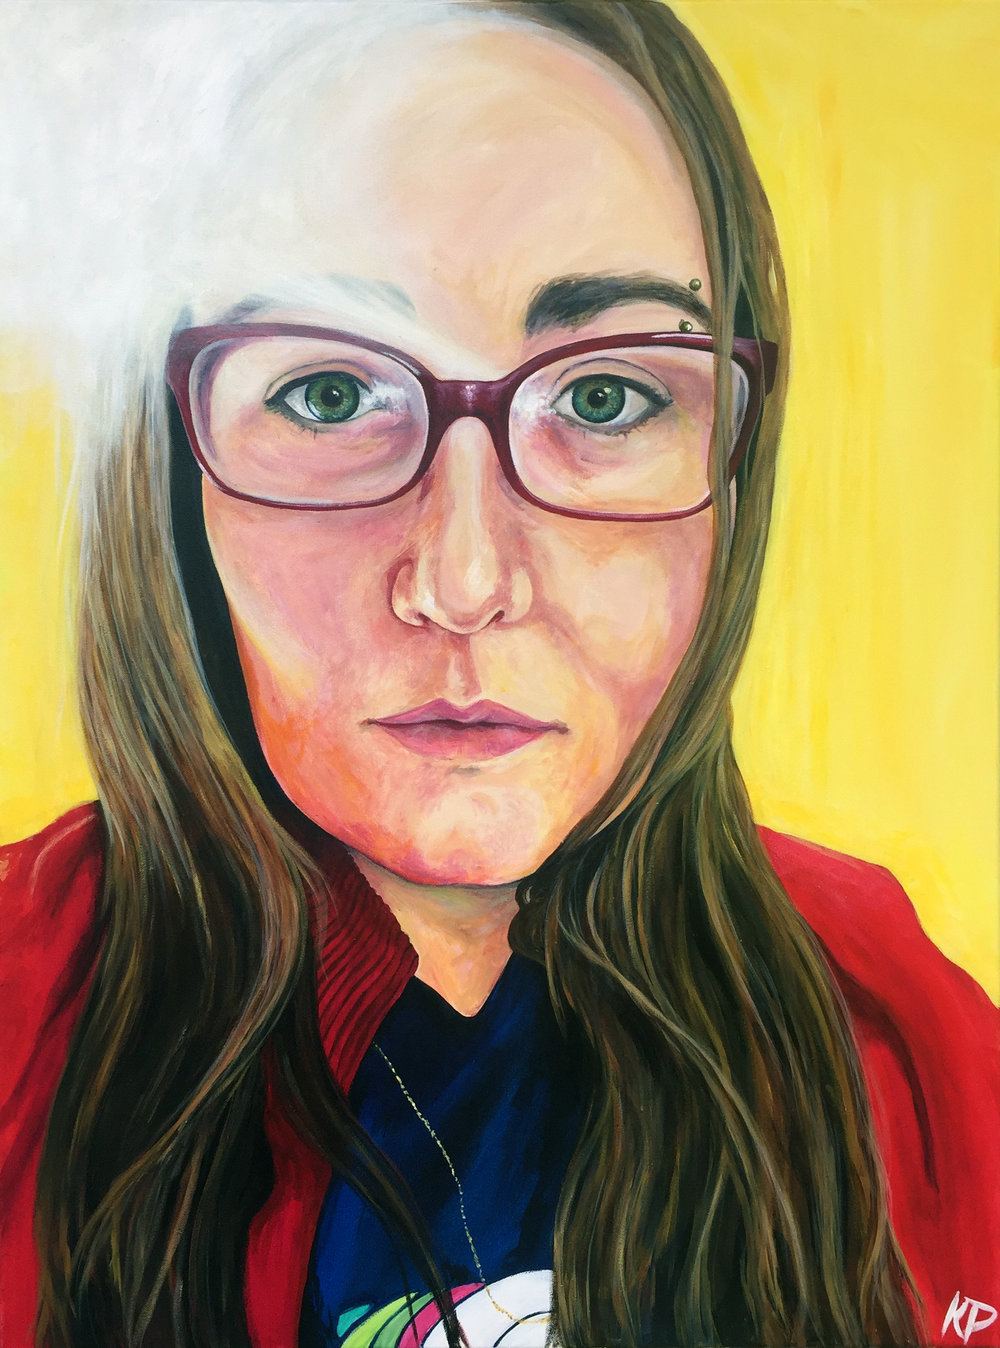 Kat Phillips - Self Portrait 02.jpg